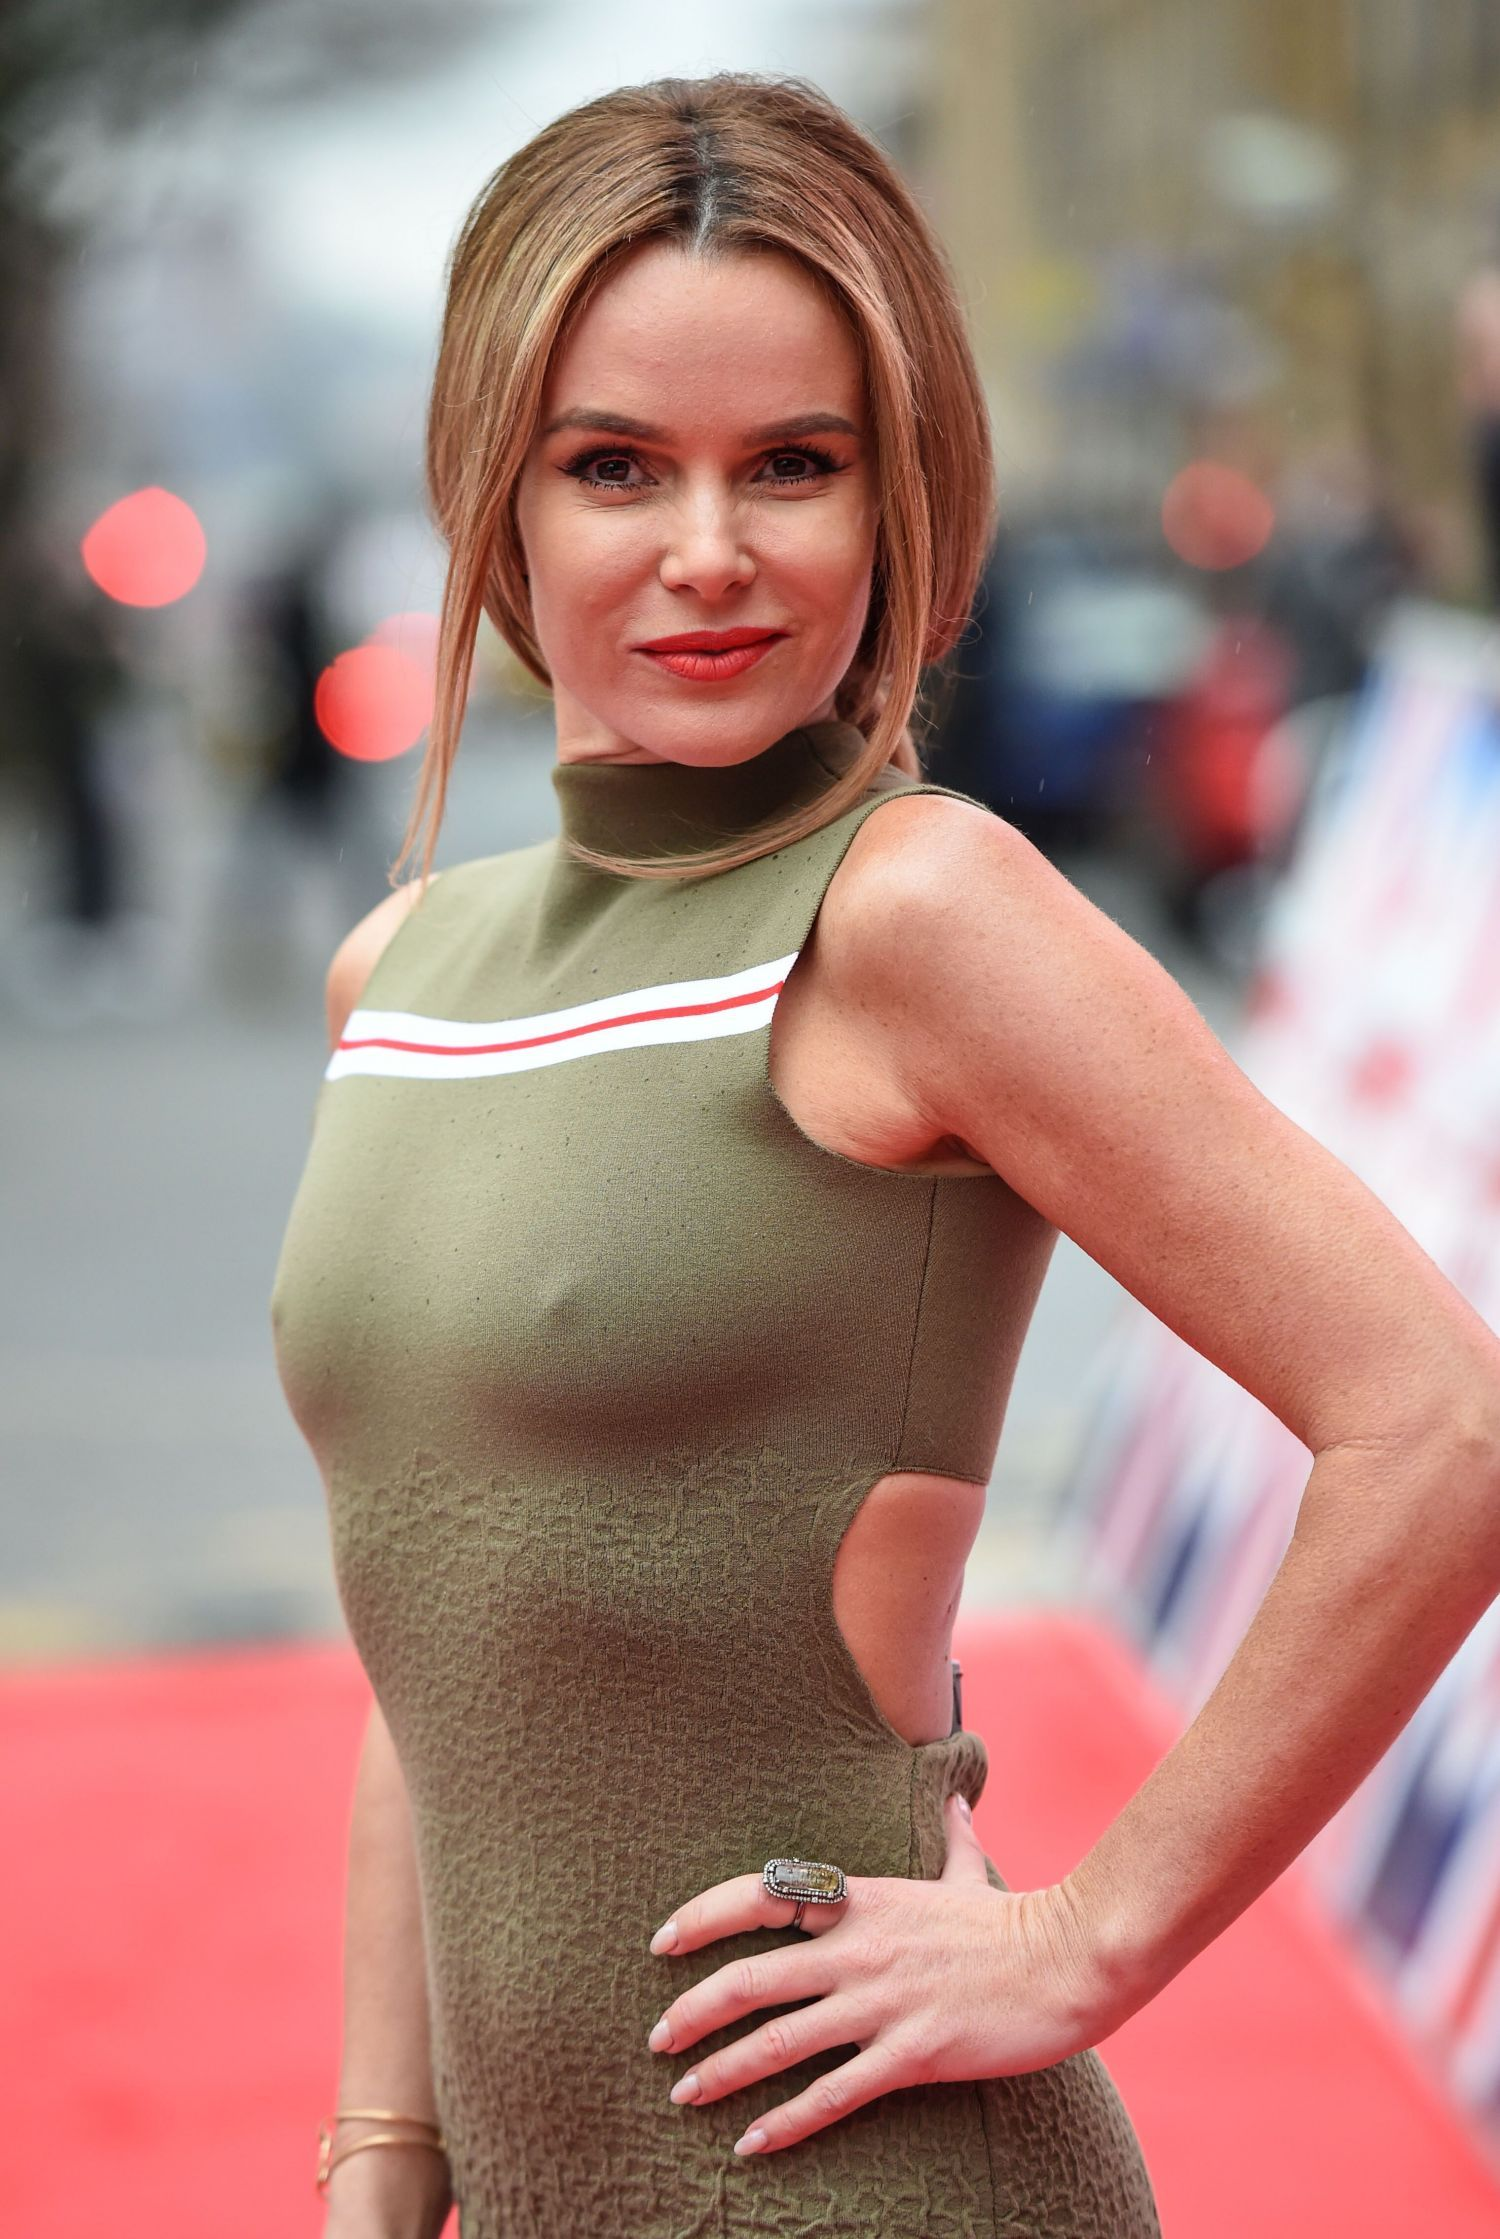 Naked pictures of amanda holden